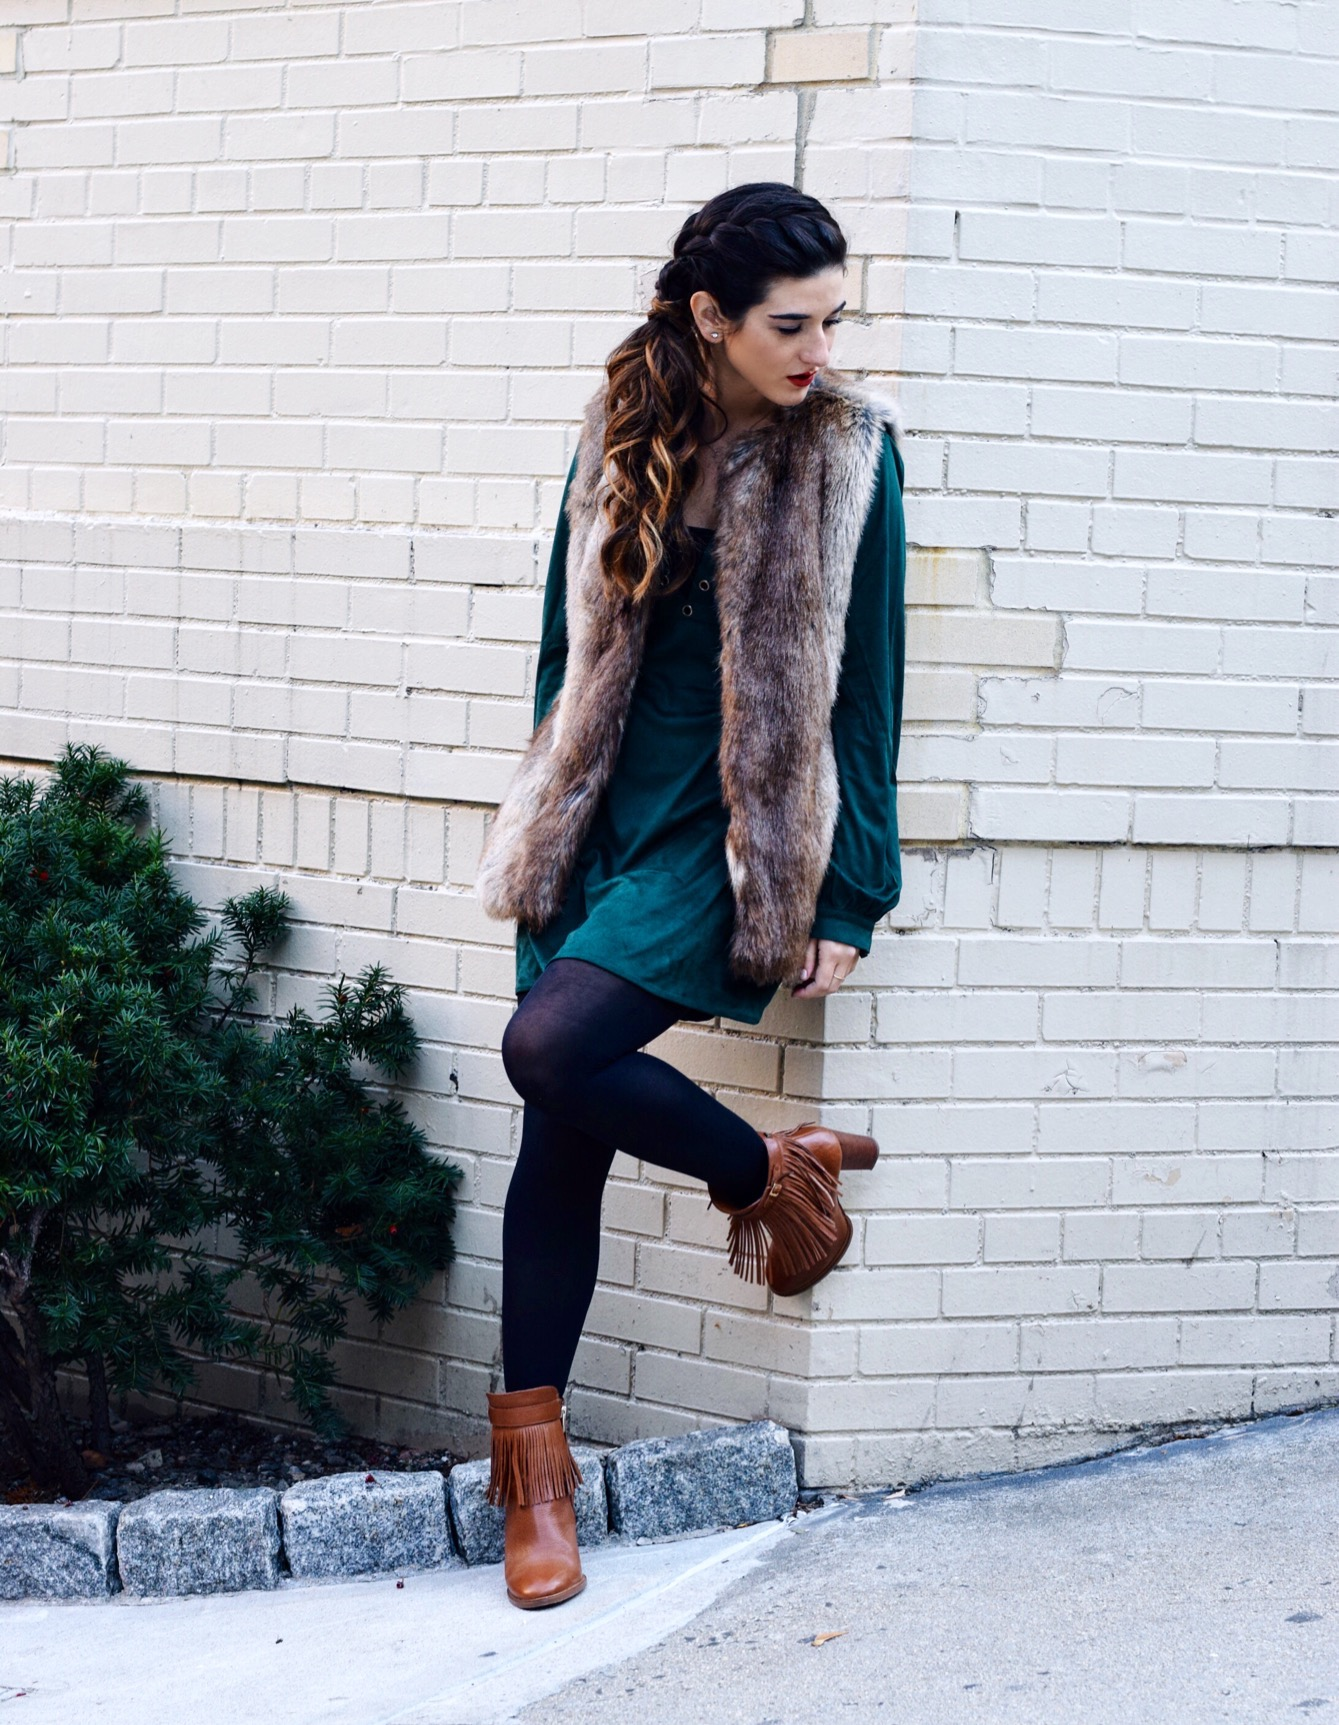 Suede Eyelet Dress Trescool Louboutins & Love Fashion Blog Esther Santer Street Style NYC Blogger Fall Winter Black Tights Ivanka Trump Fringe Booties Camel Hair Girl Women Beautiful Photoshoot Model Outfit OOTD Inspo Trendy Fur Vest Zara What To Wear.JPG